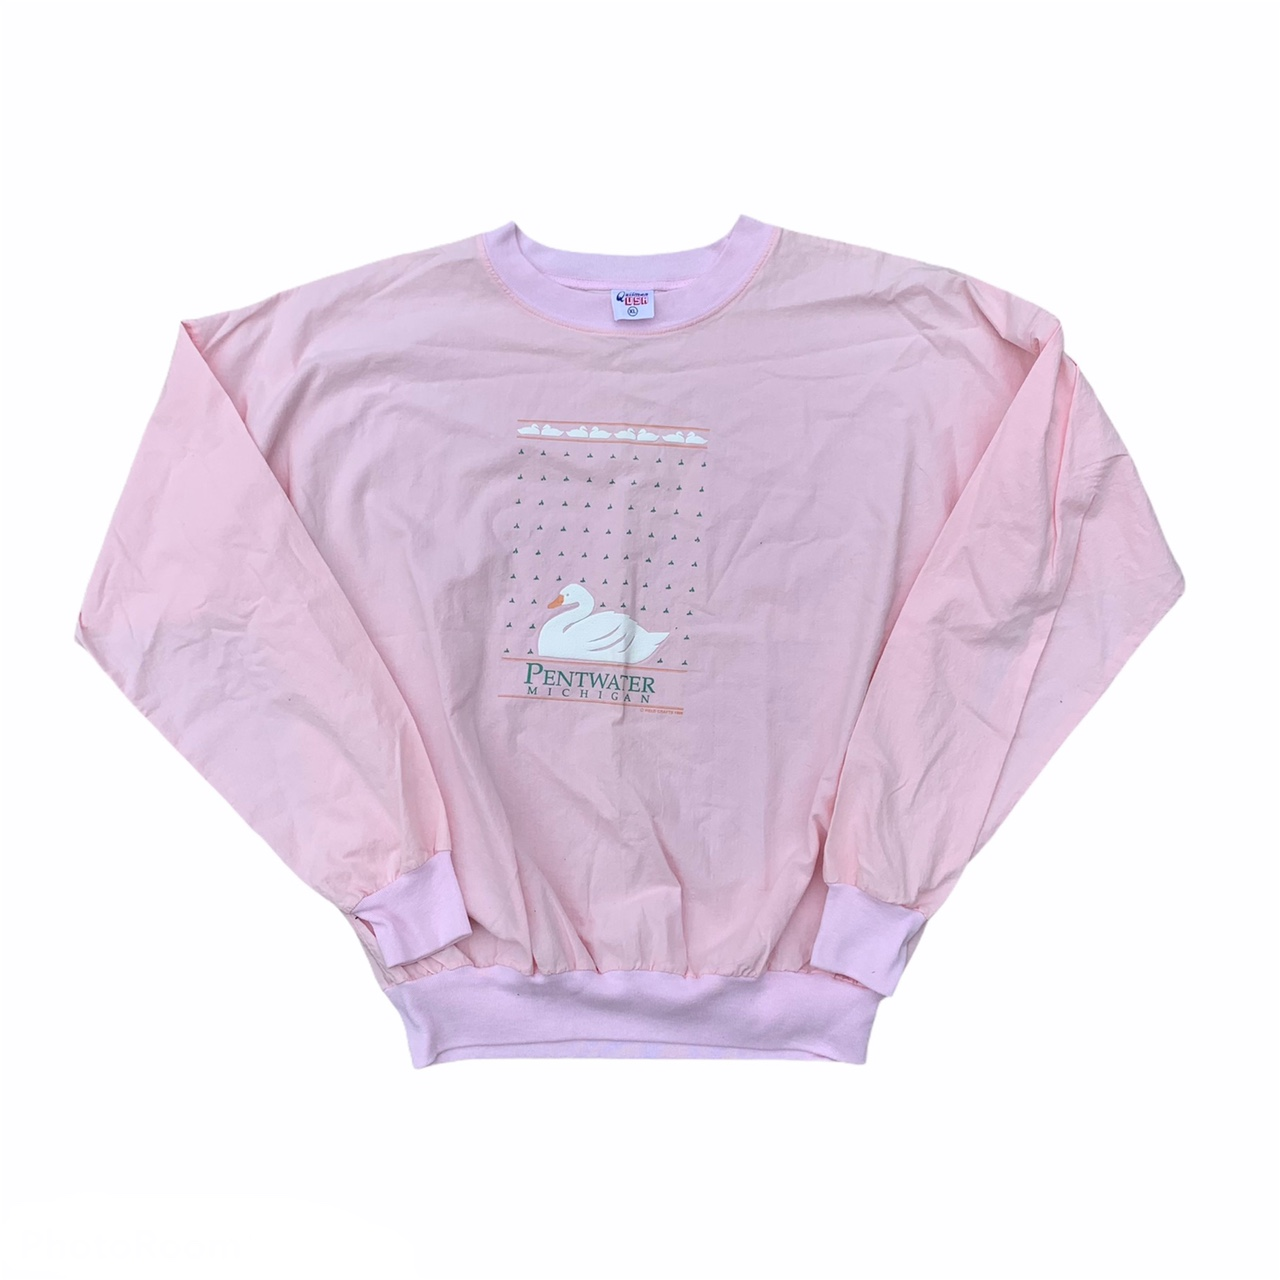 Product Image 1 - Vintage 90s light pink sweater